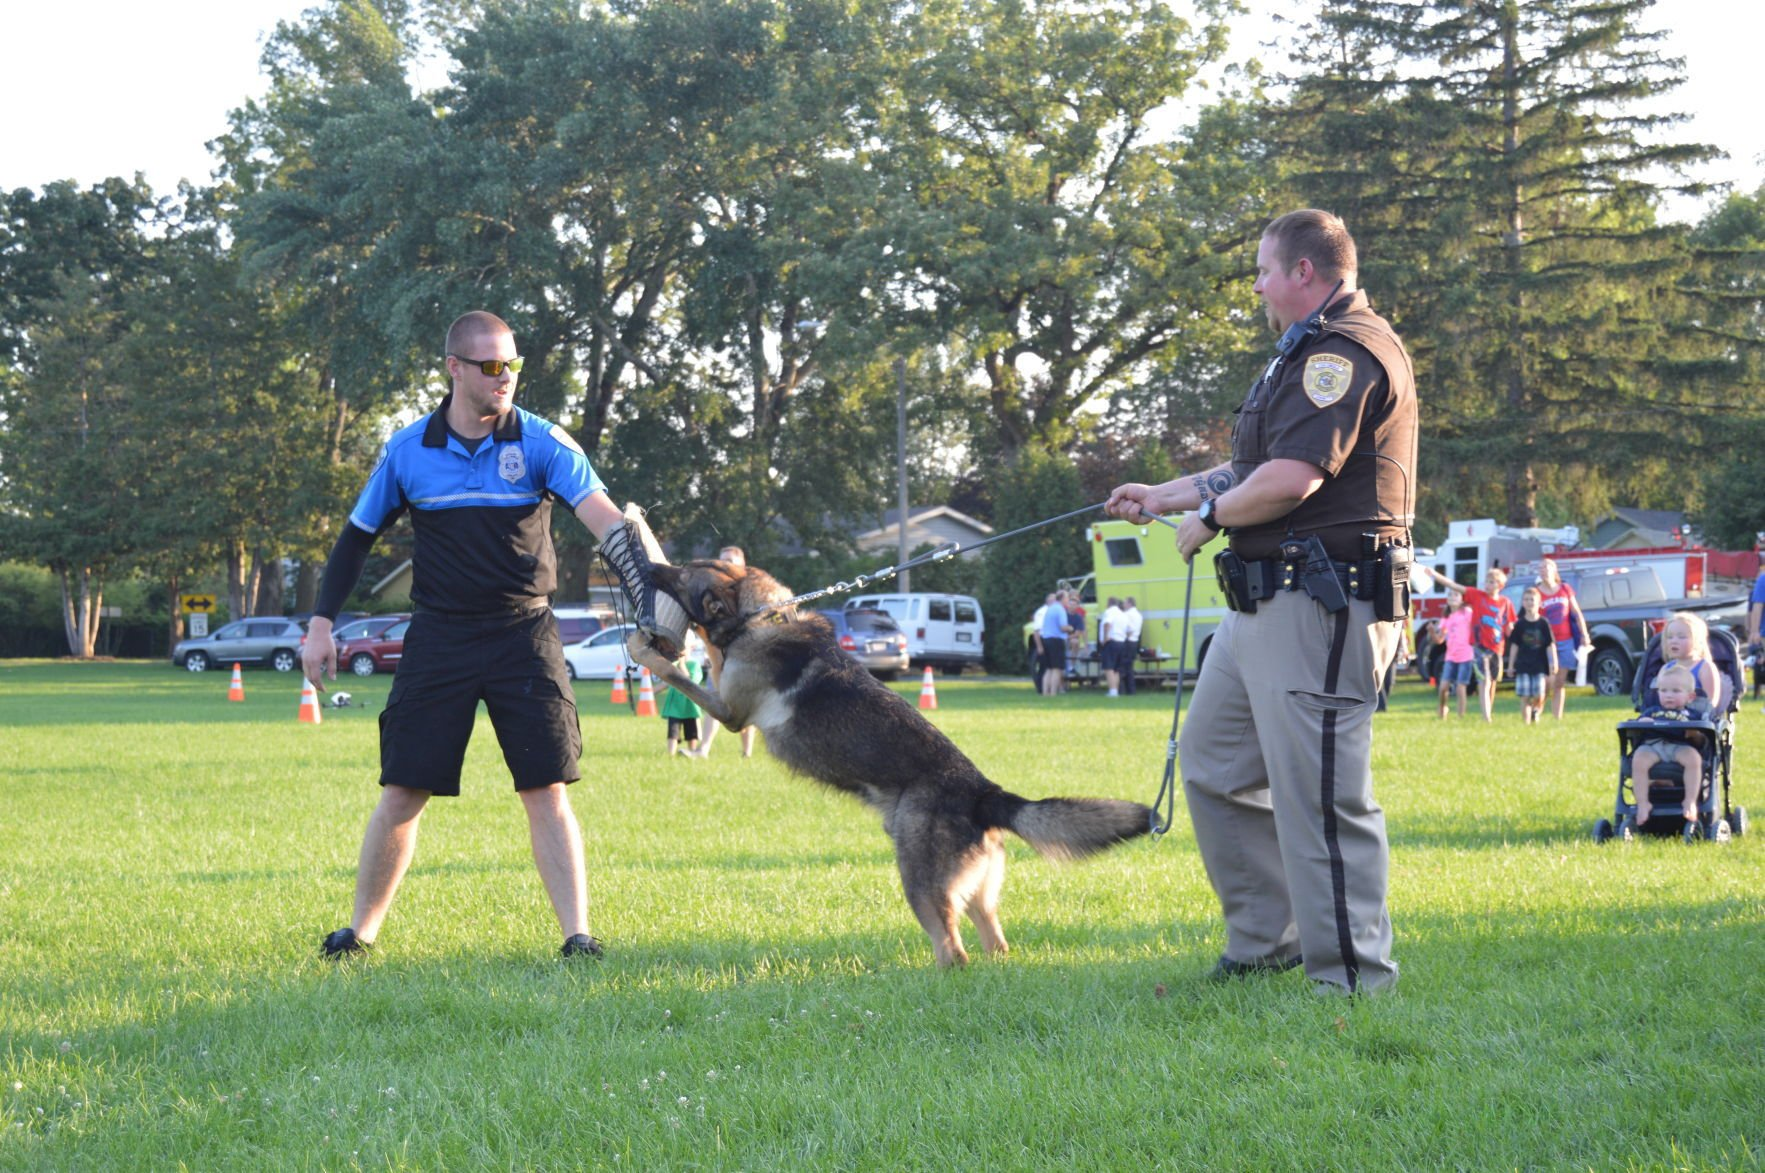 National Night Out: Tuesday August 1